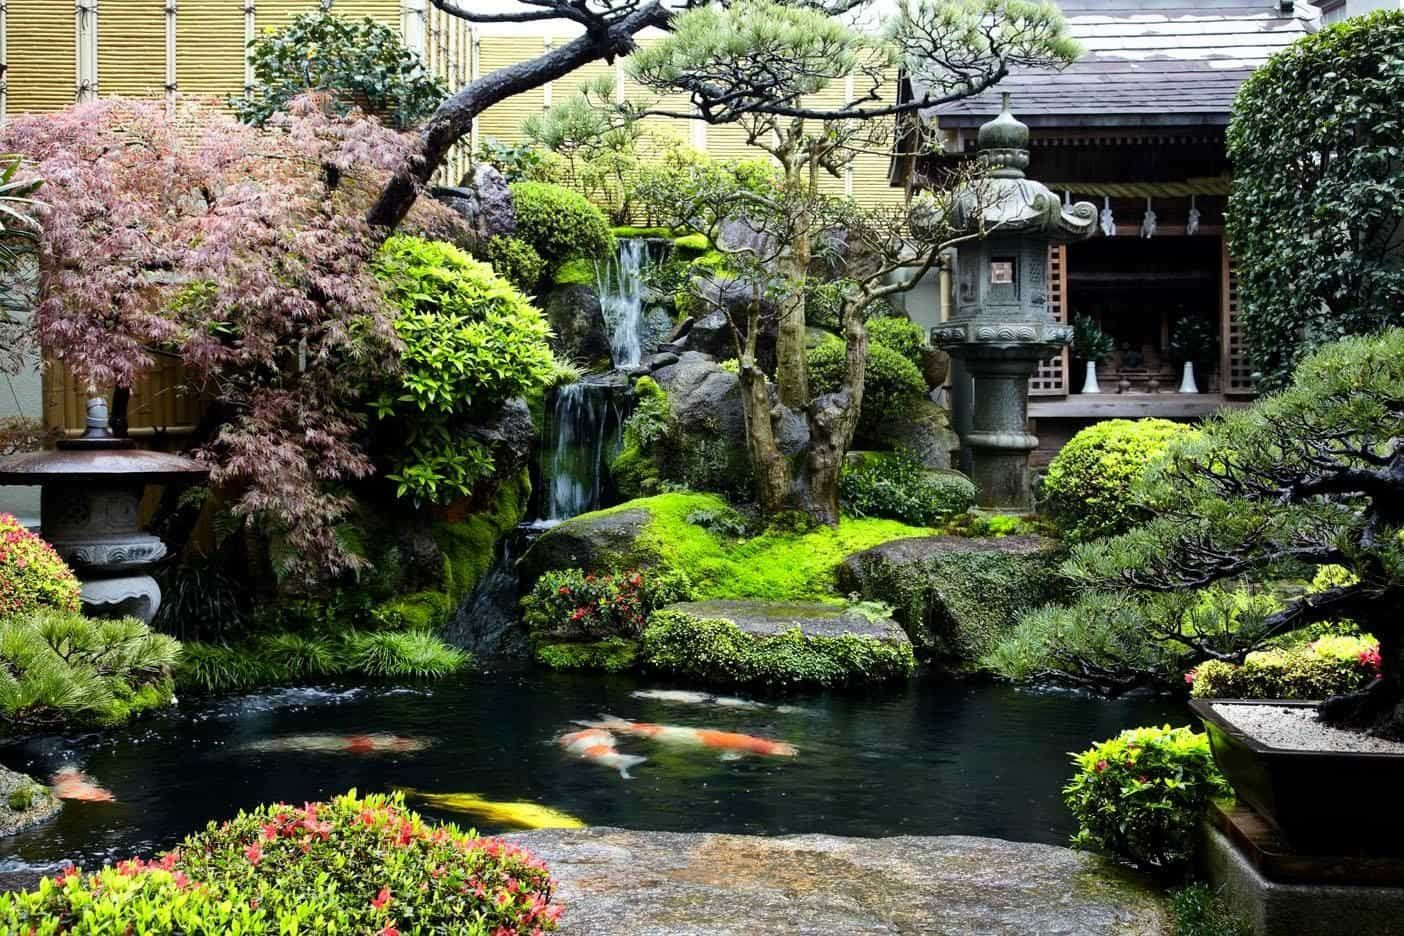 Backyard Japanese Water Garden With Ornaments